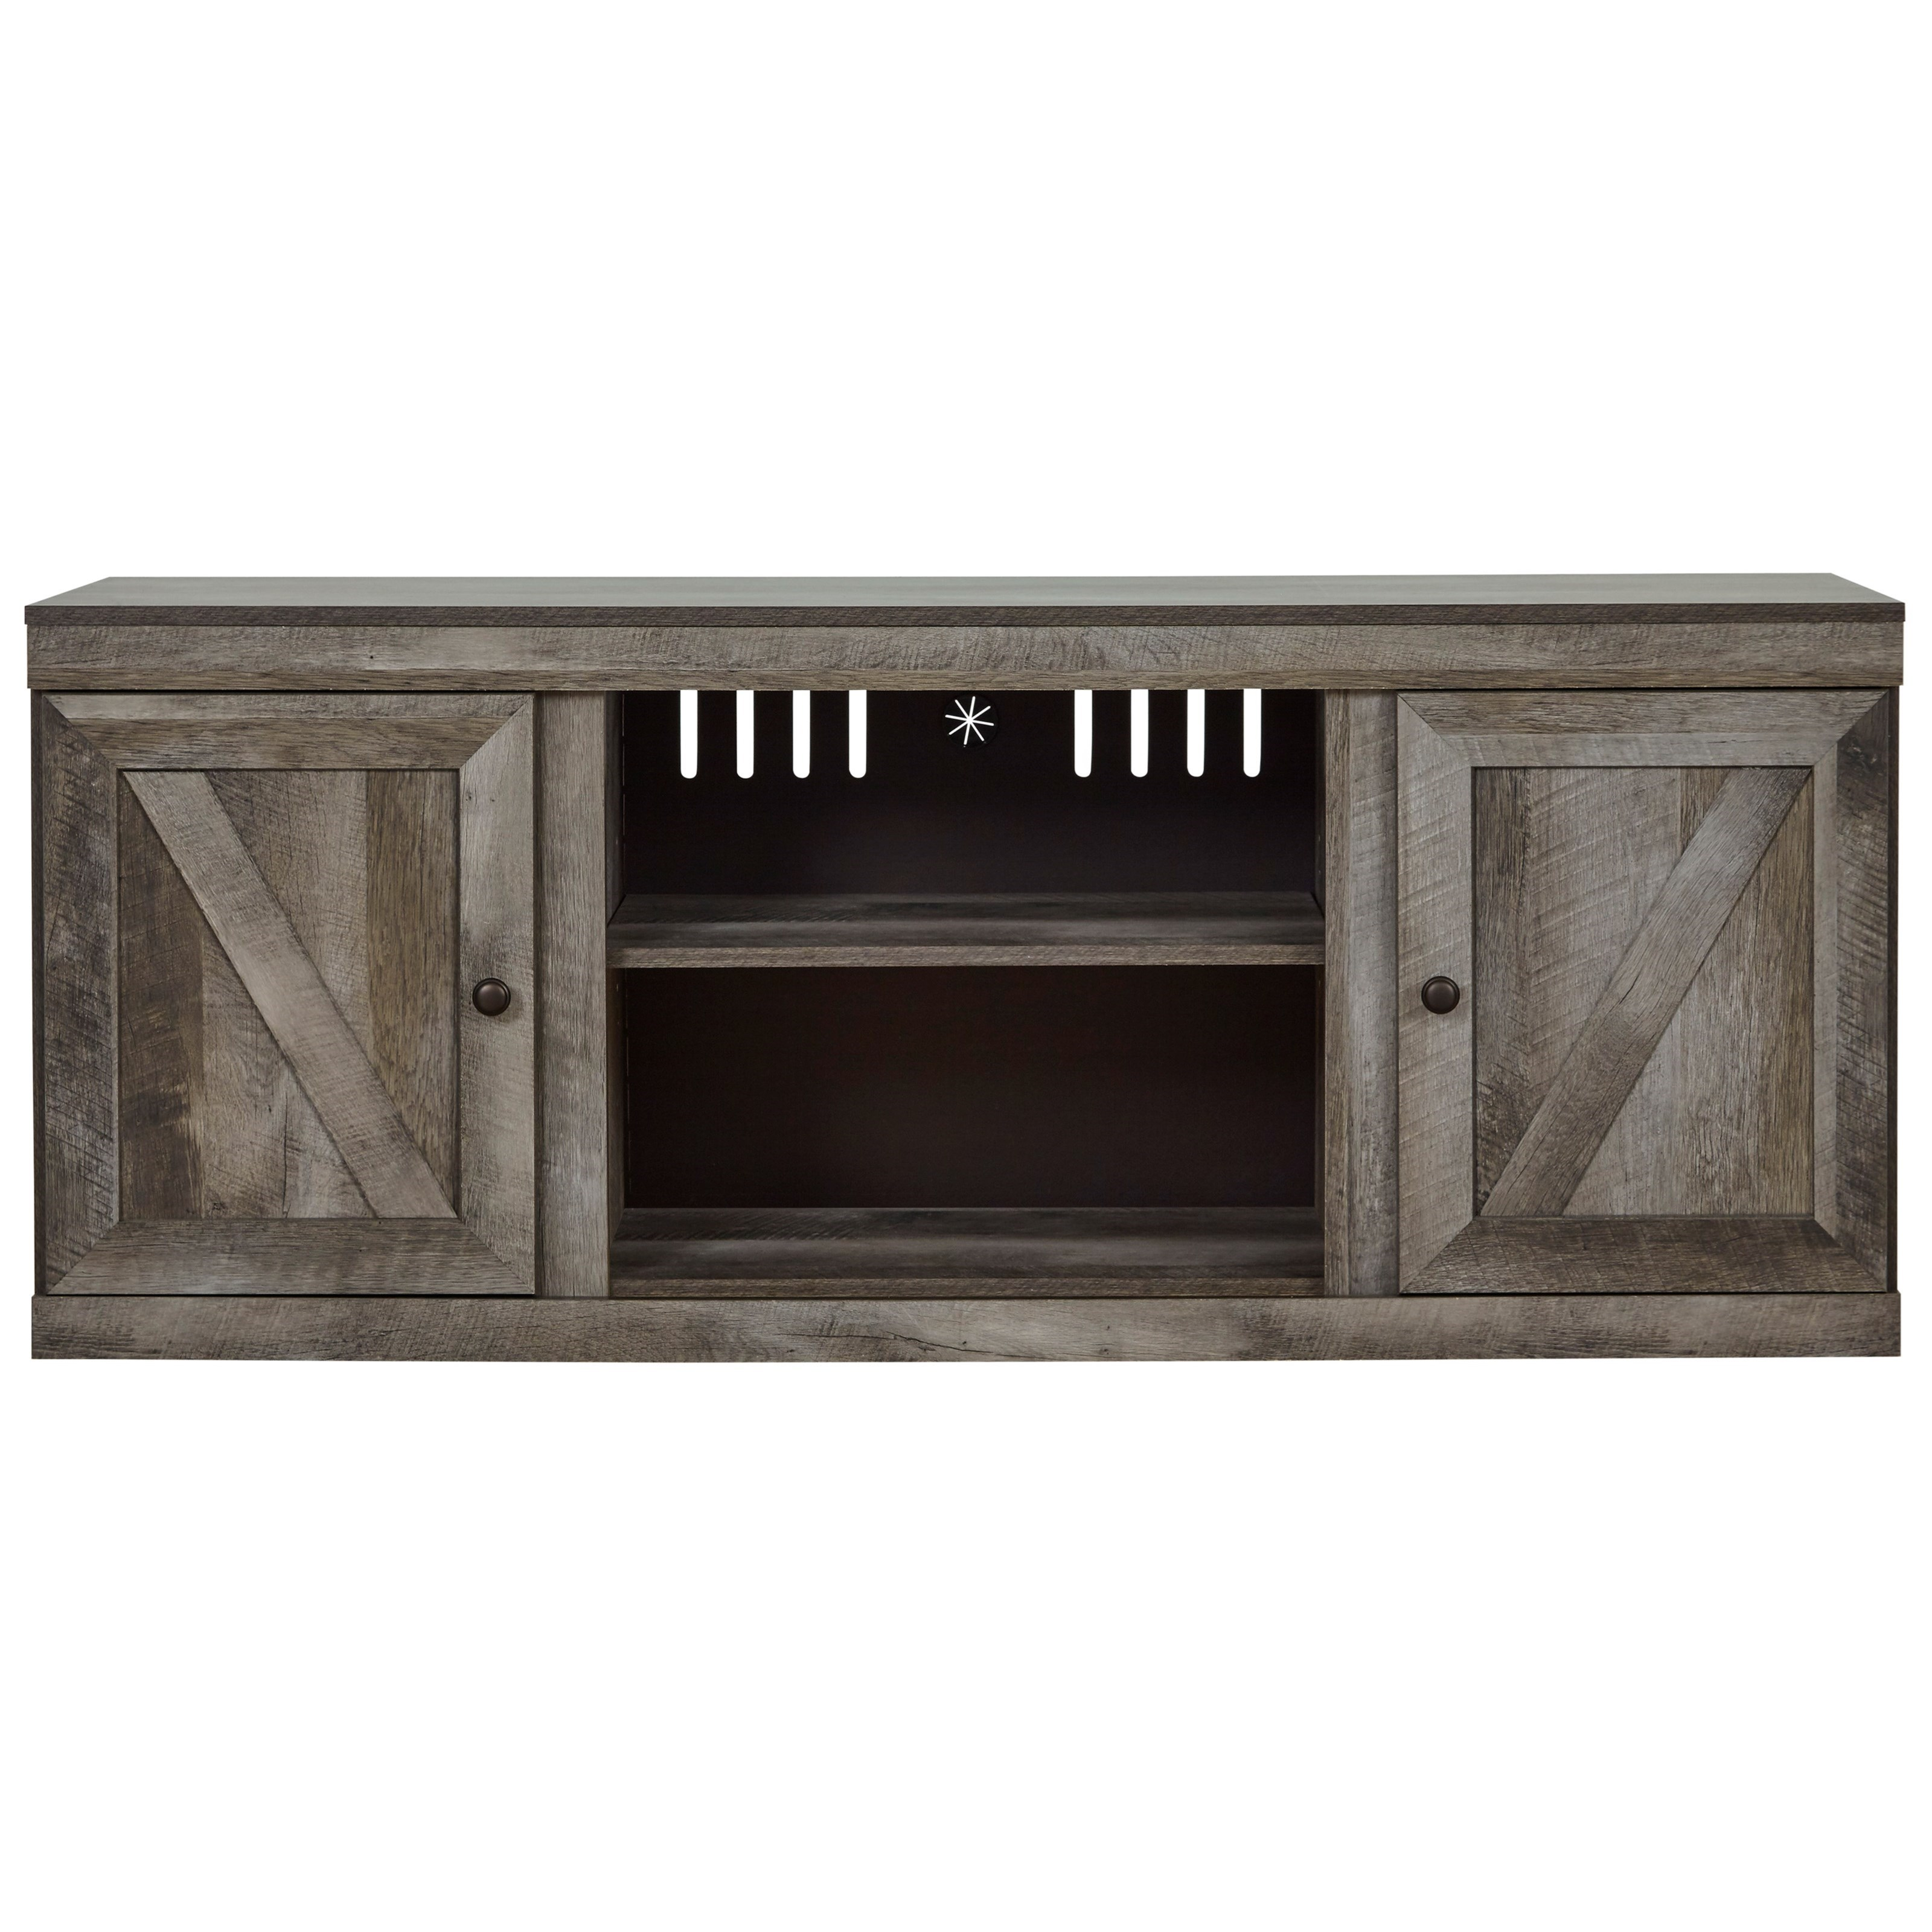 Wynnlow Large TV Stand by Signature Design by Ashley at Carolina Direct